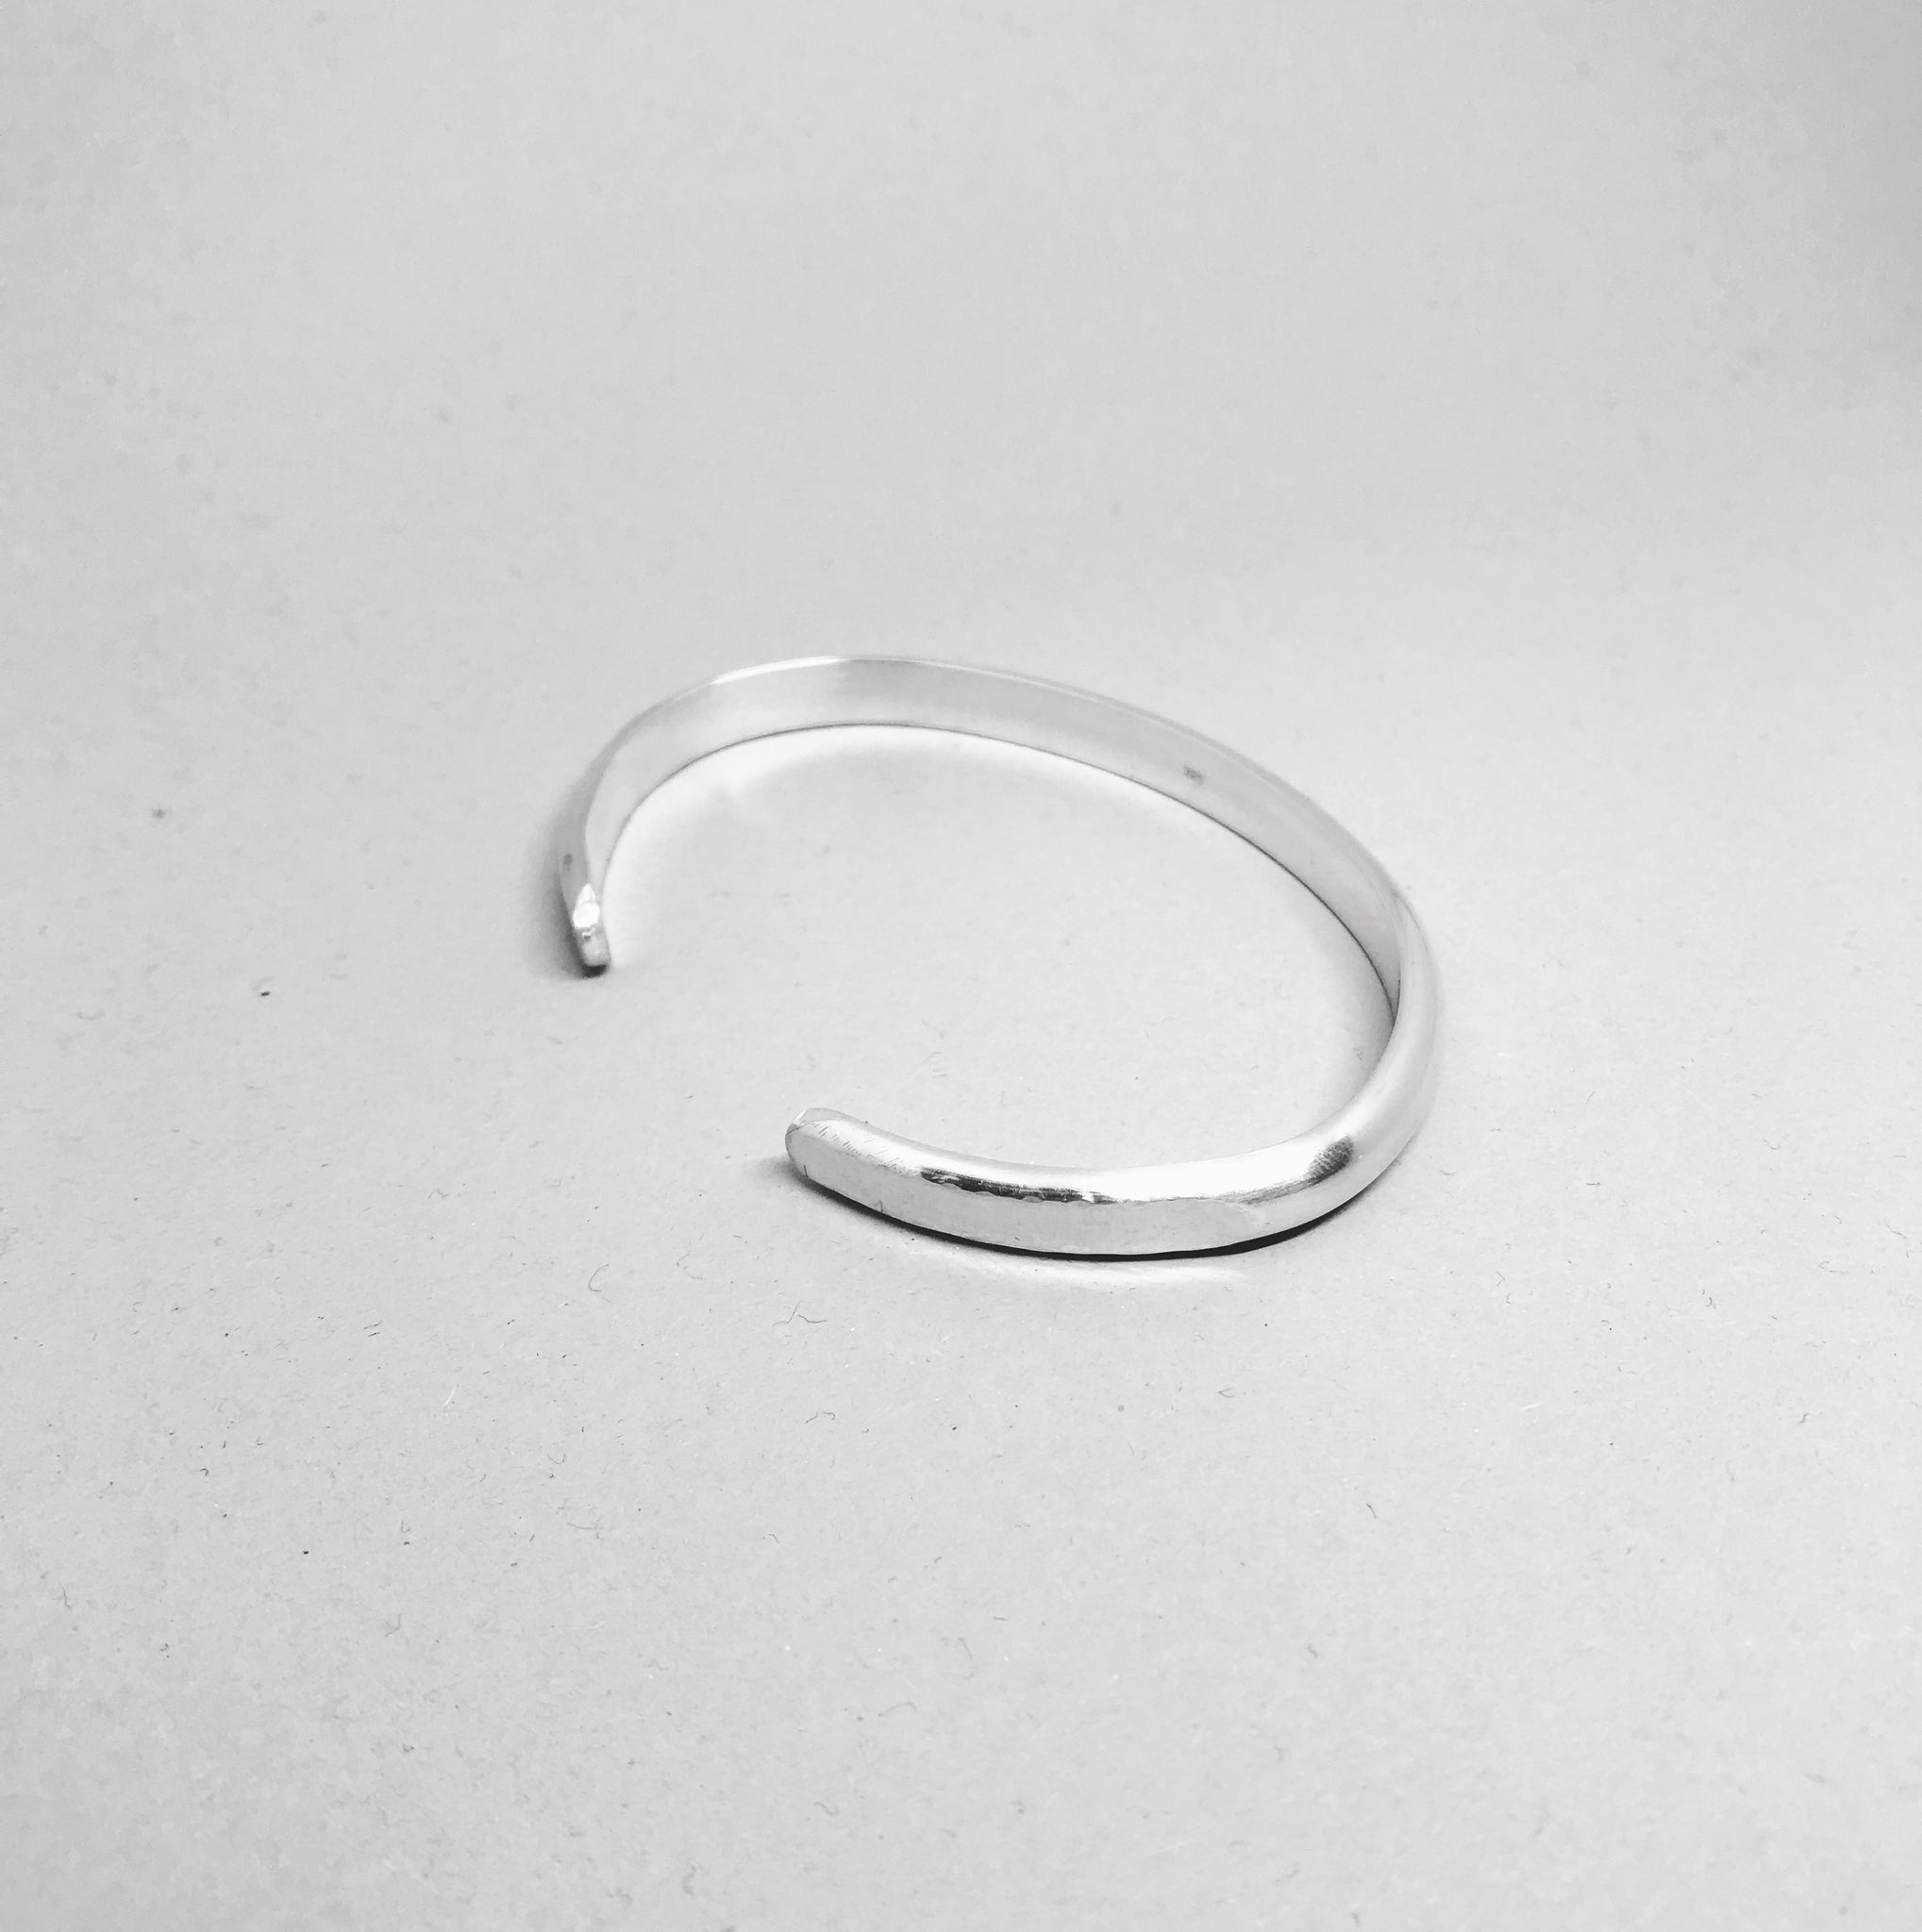 Rounded Bangle with Hammered Ends - 925 Sterling Silver